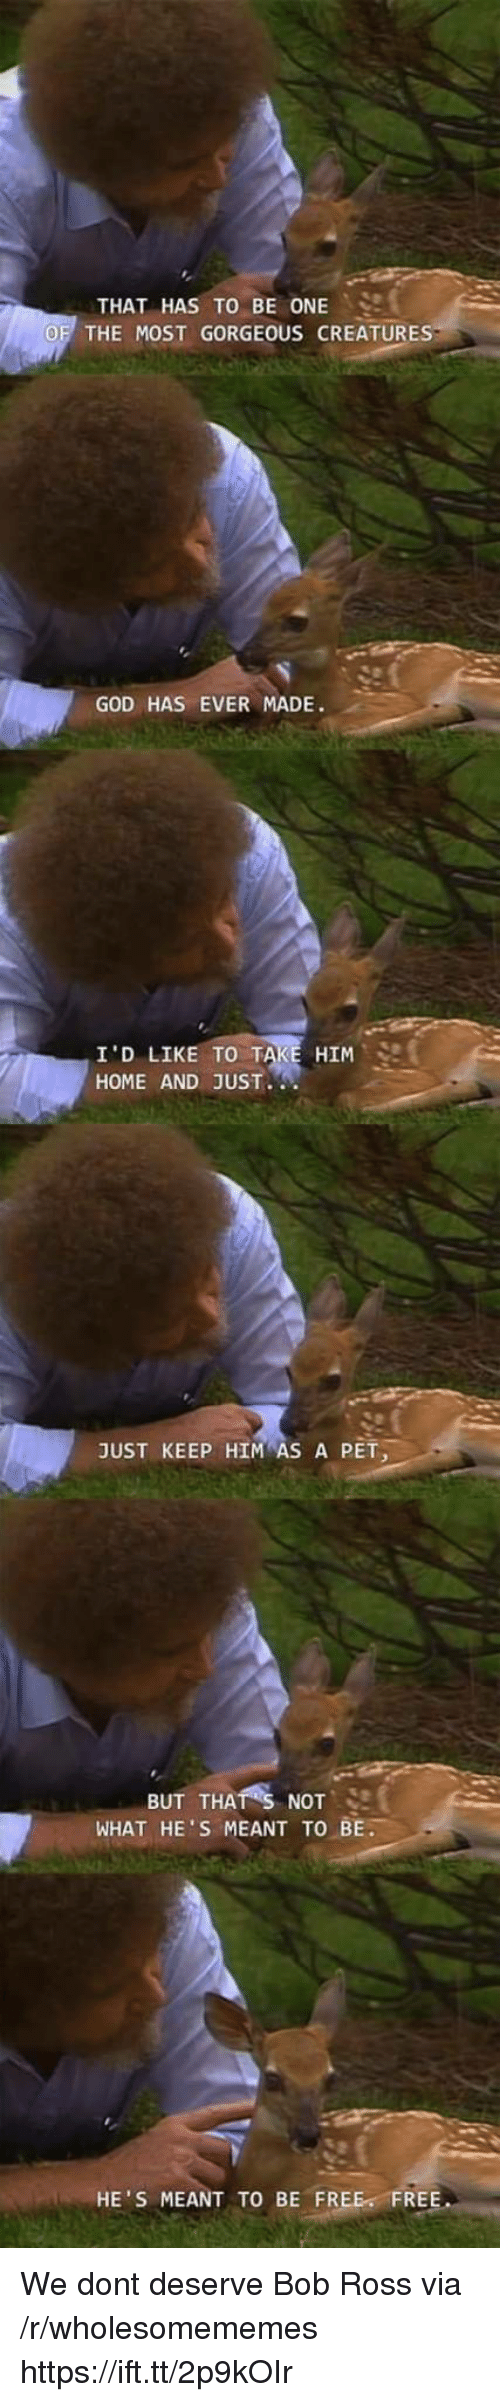 God, Bob Ross, and Free: THAT HAS TO BE ONE ..  THE MOST GORGEOUS CREATURE  GOD HAS EVER MADE.  HIM  I'D LIKE TO T  HOME AND JUST  JUST KEEP HIM AS A PET  BUT THATS NOT, SI  WHAT HE'S MEANT TO BE.  HE'S MEANT TO BE FREE FREE We dont deserve Bob Ross via /r/wholesomememes https://ift.tt/2p9kOIr